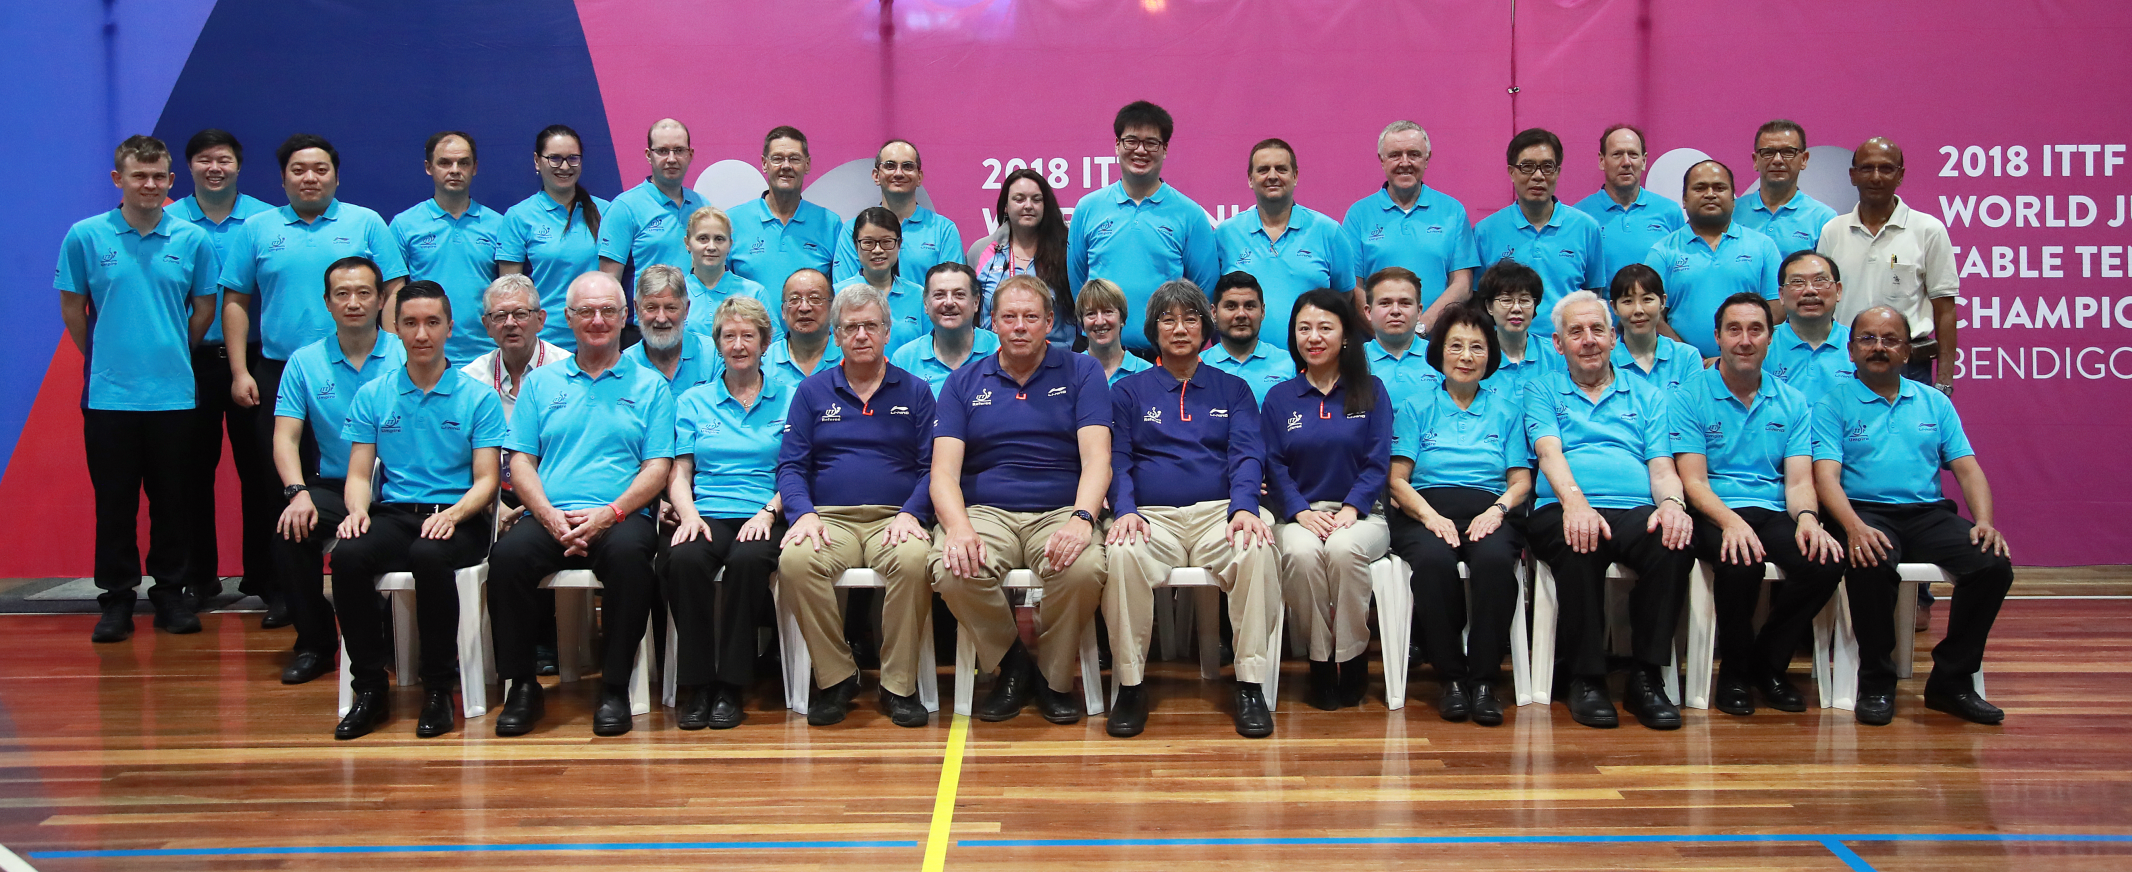 Officials Photo - 2018 World Junior Table Tennis Championships (Bendigo, Australia) 2-9 December